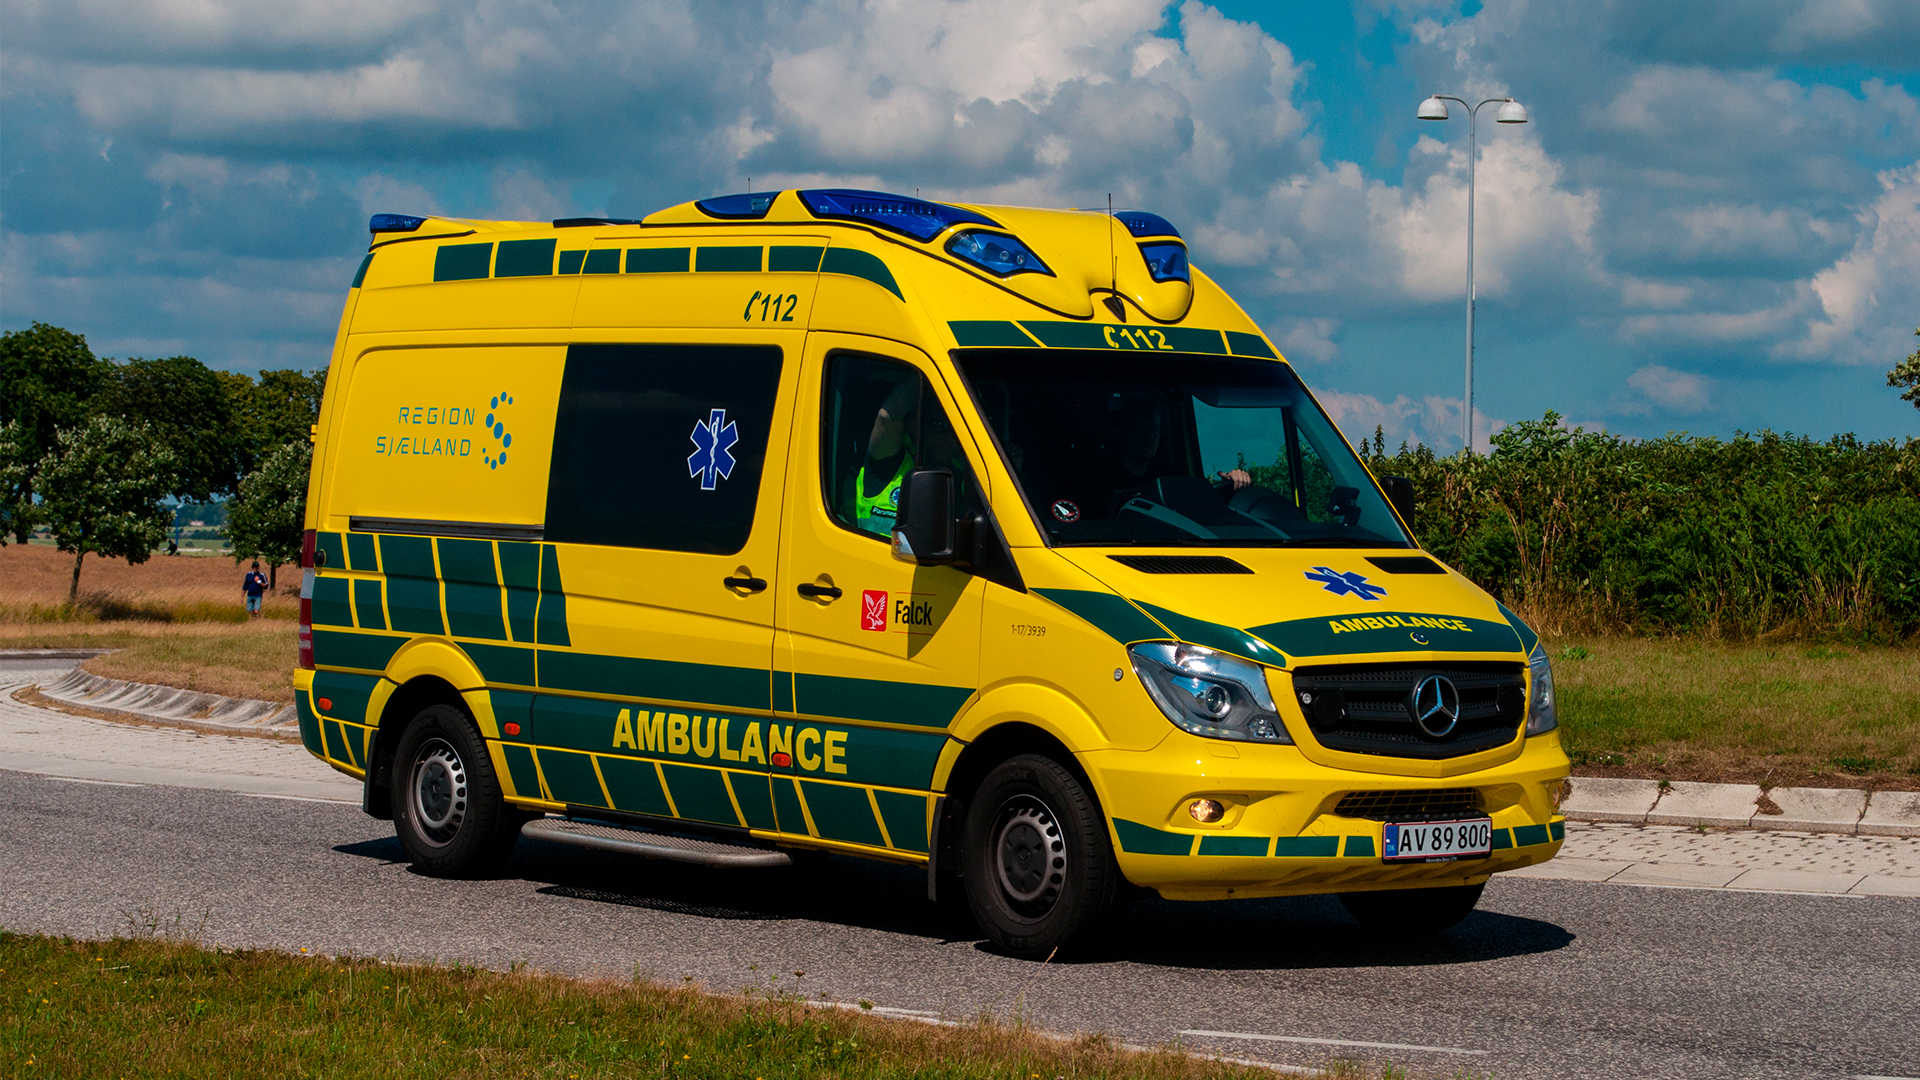 Ambulance drives on the road